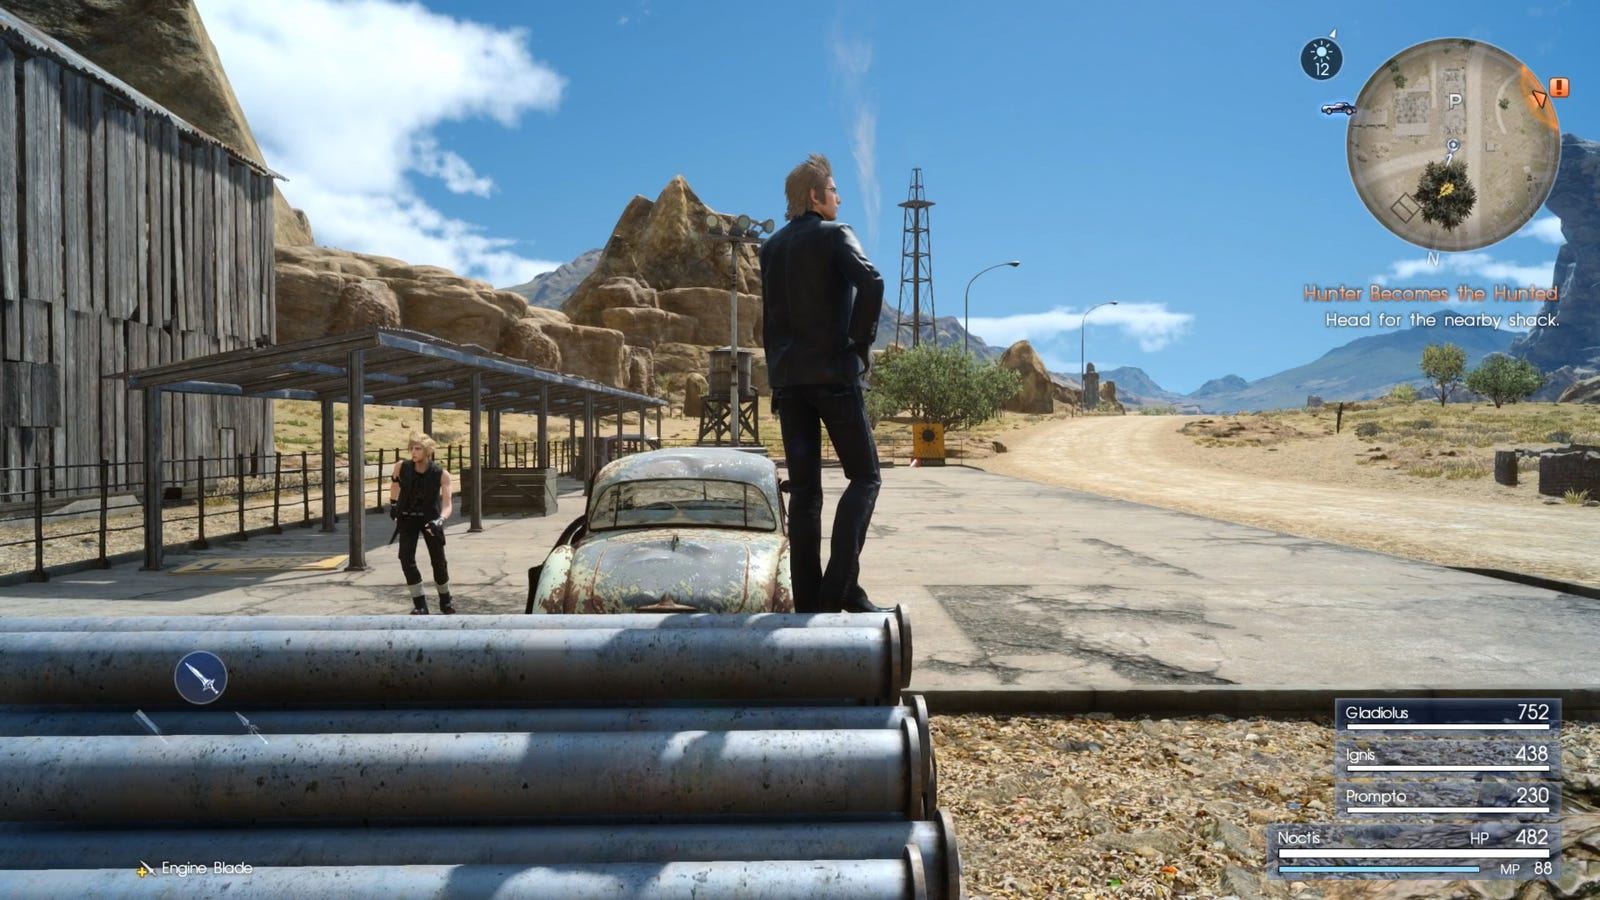 Get down from there, Ignis.